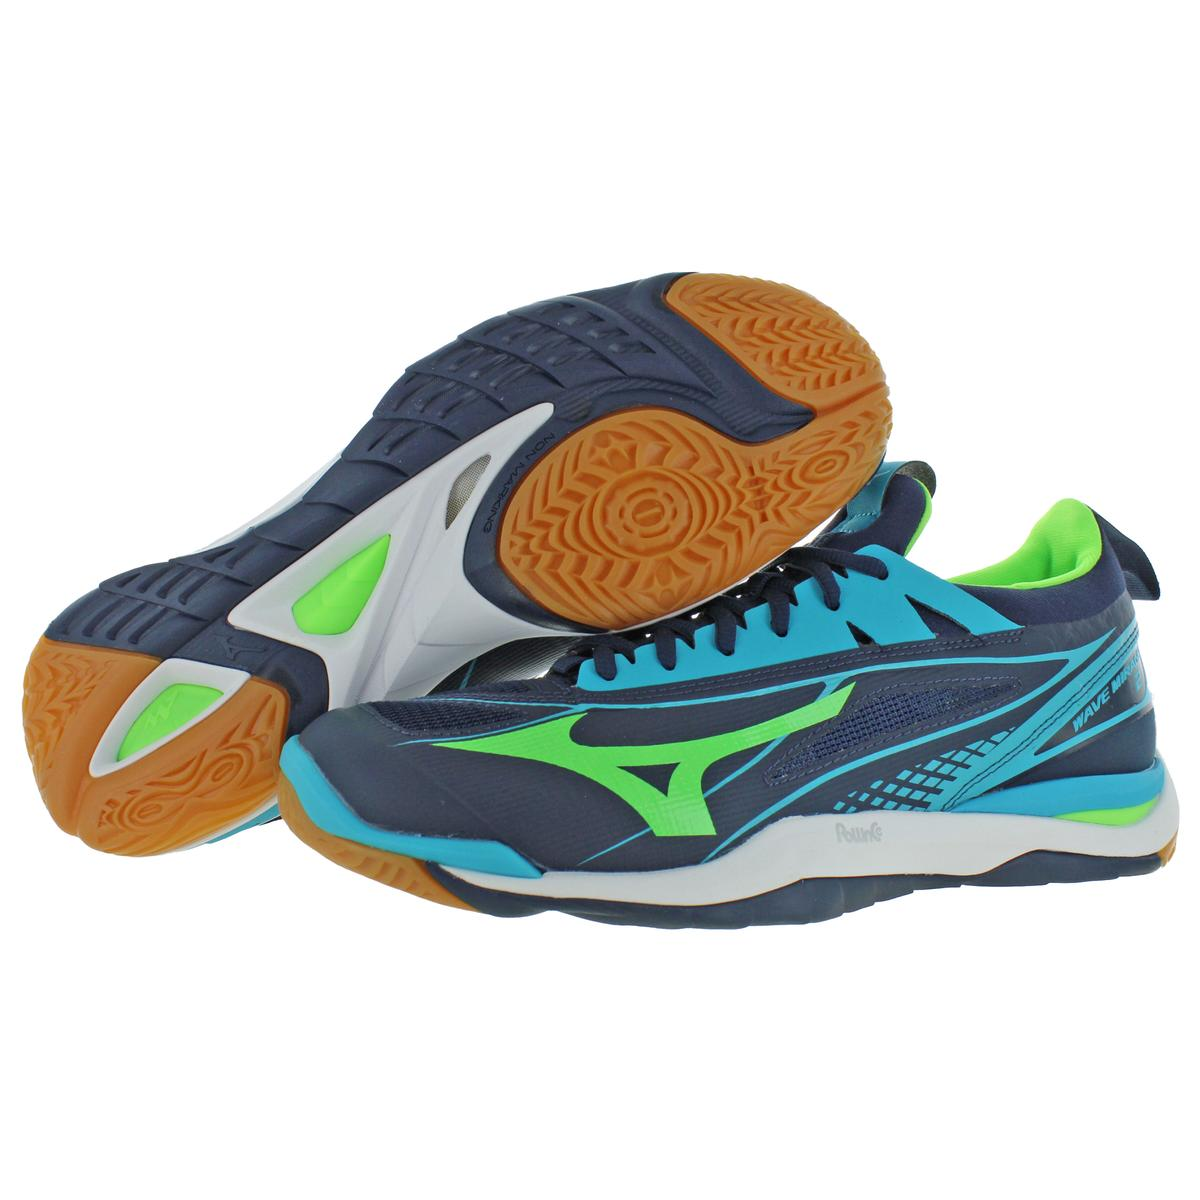 Mizuno-Mens-Wave-Mirage-2-Non-Marking-Handball-Lace-Up-Sneakers-Shoes-BHFO-9072 thumbnail 6